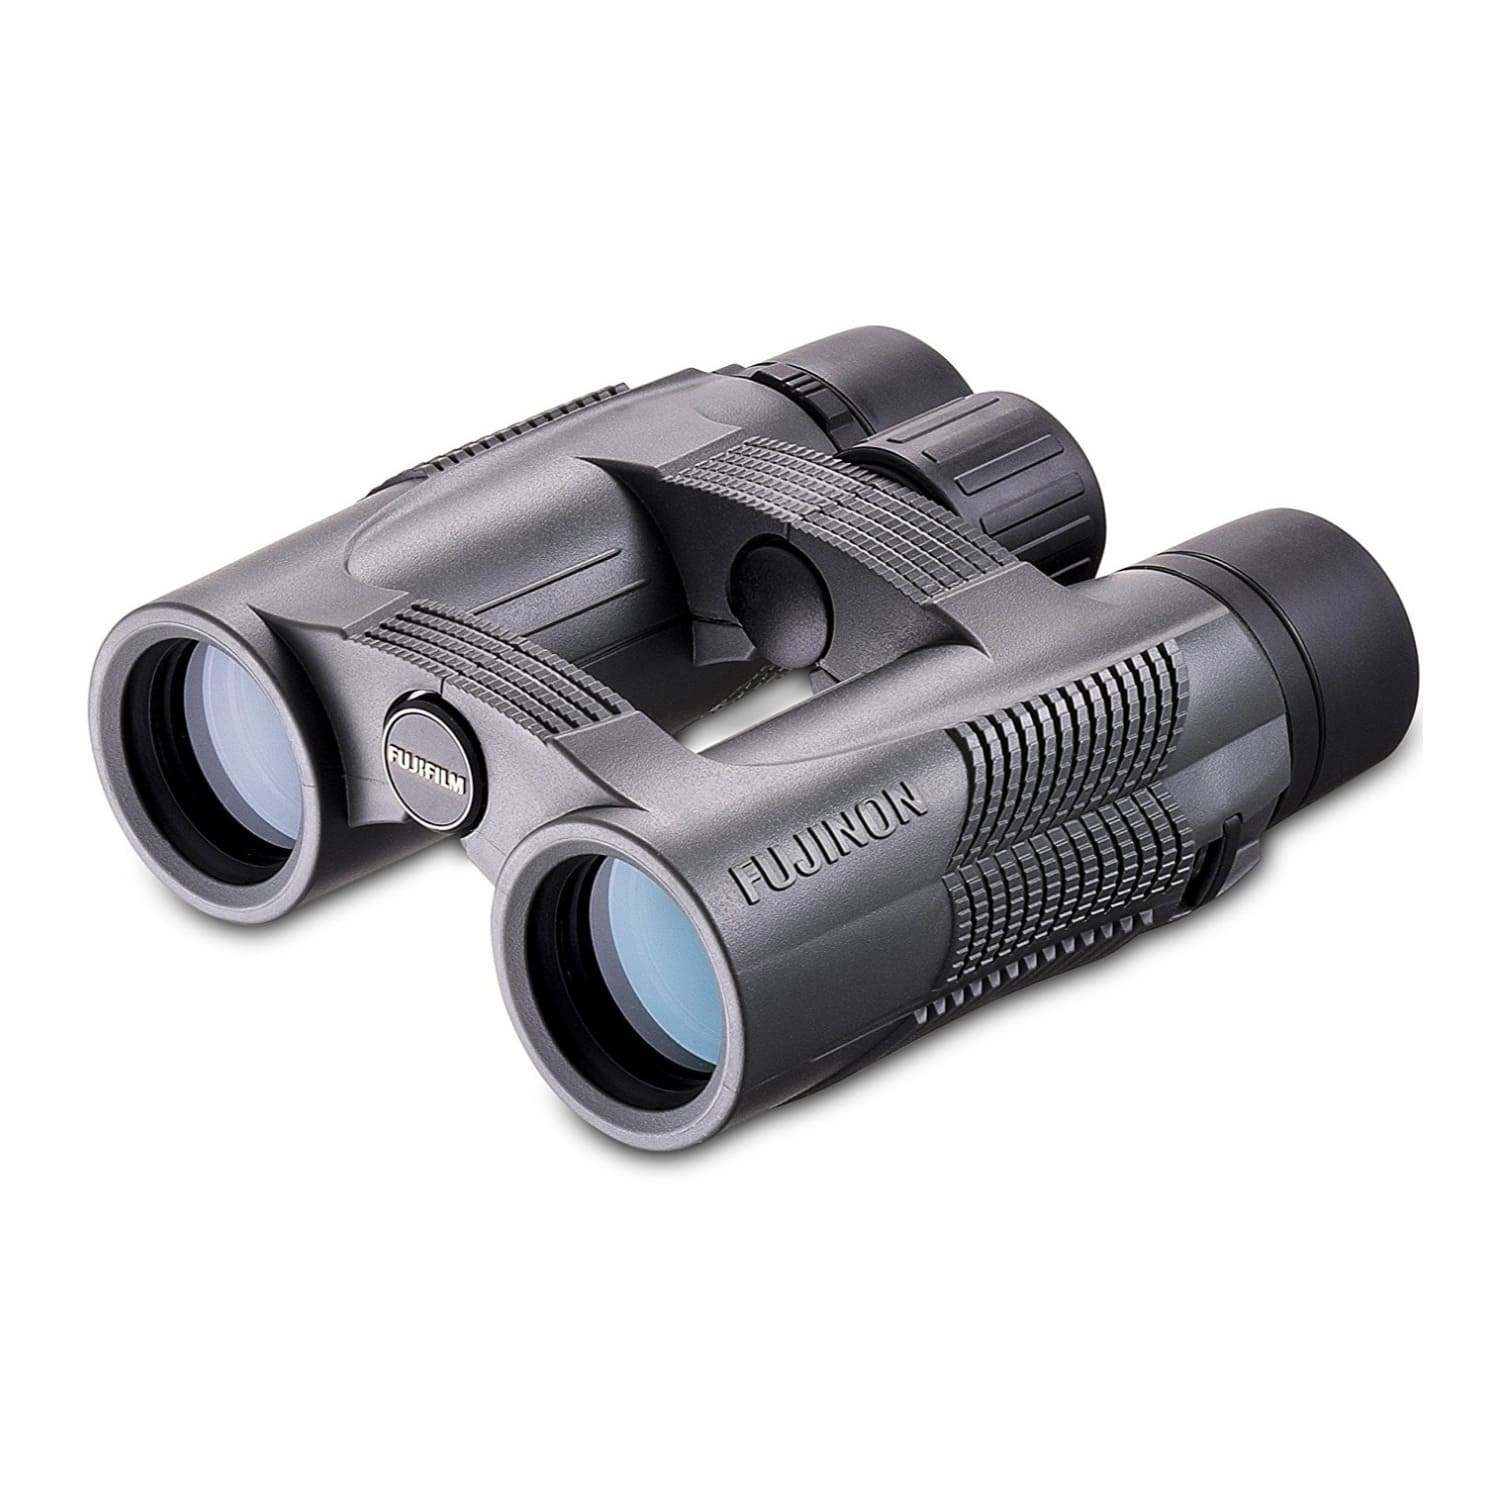 Fujinon KF 10x32W Roof Prism Binoculars + Accurion 3-9x40 or Accurion 1.75-5x32 Riflescope $149 each + free s/h